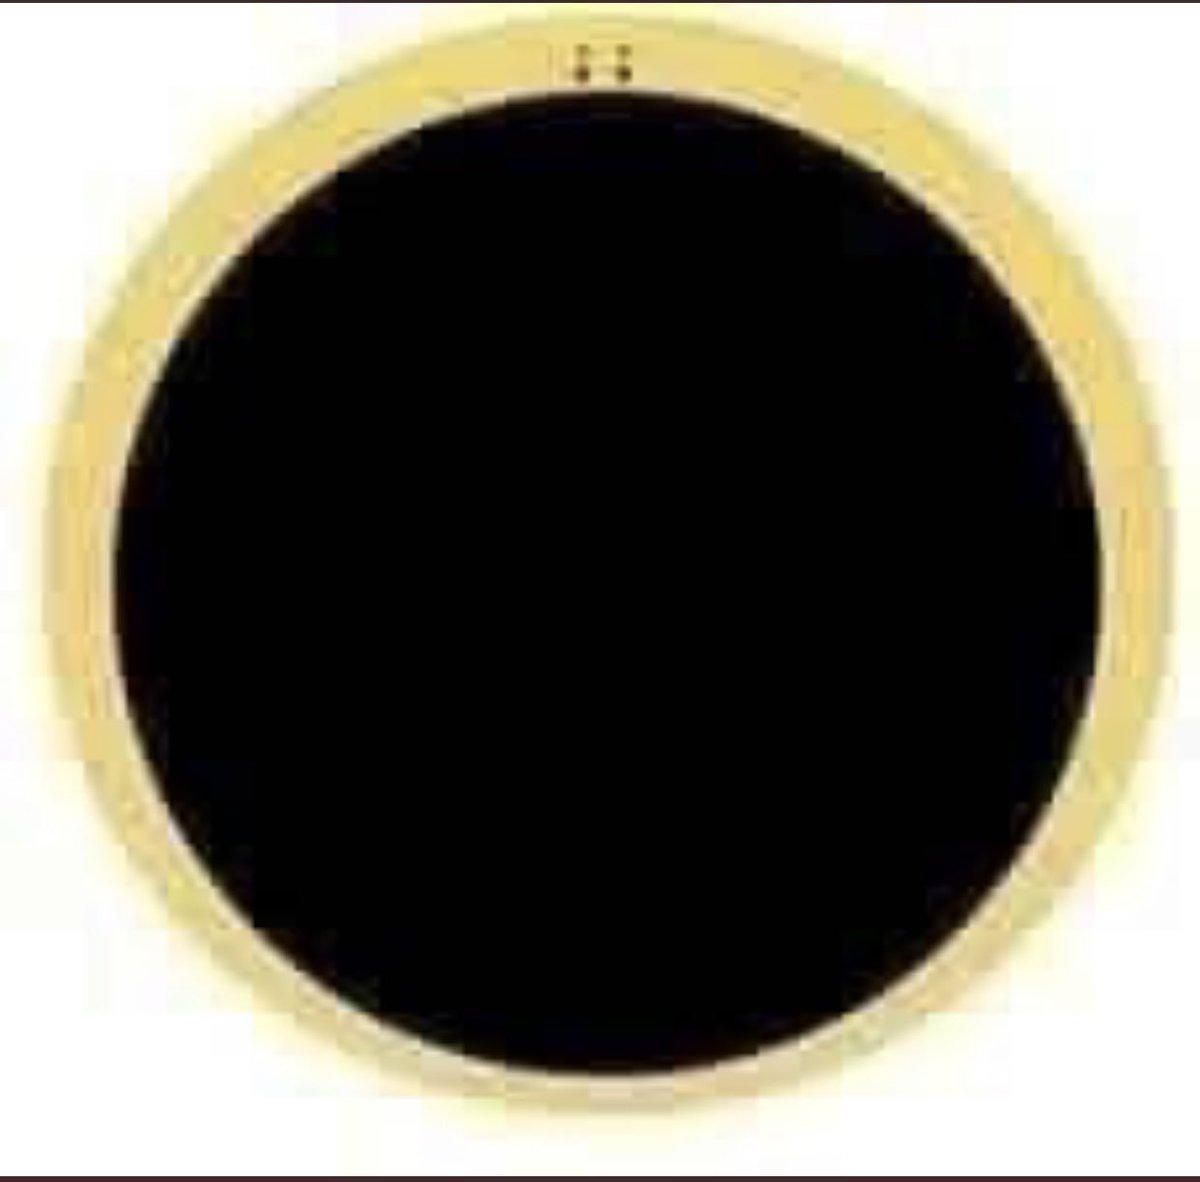 If you zoom in, you'll see a clown.